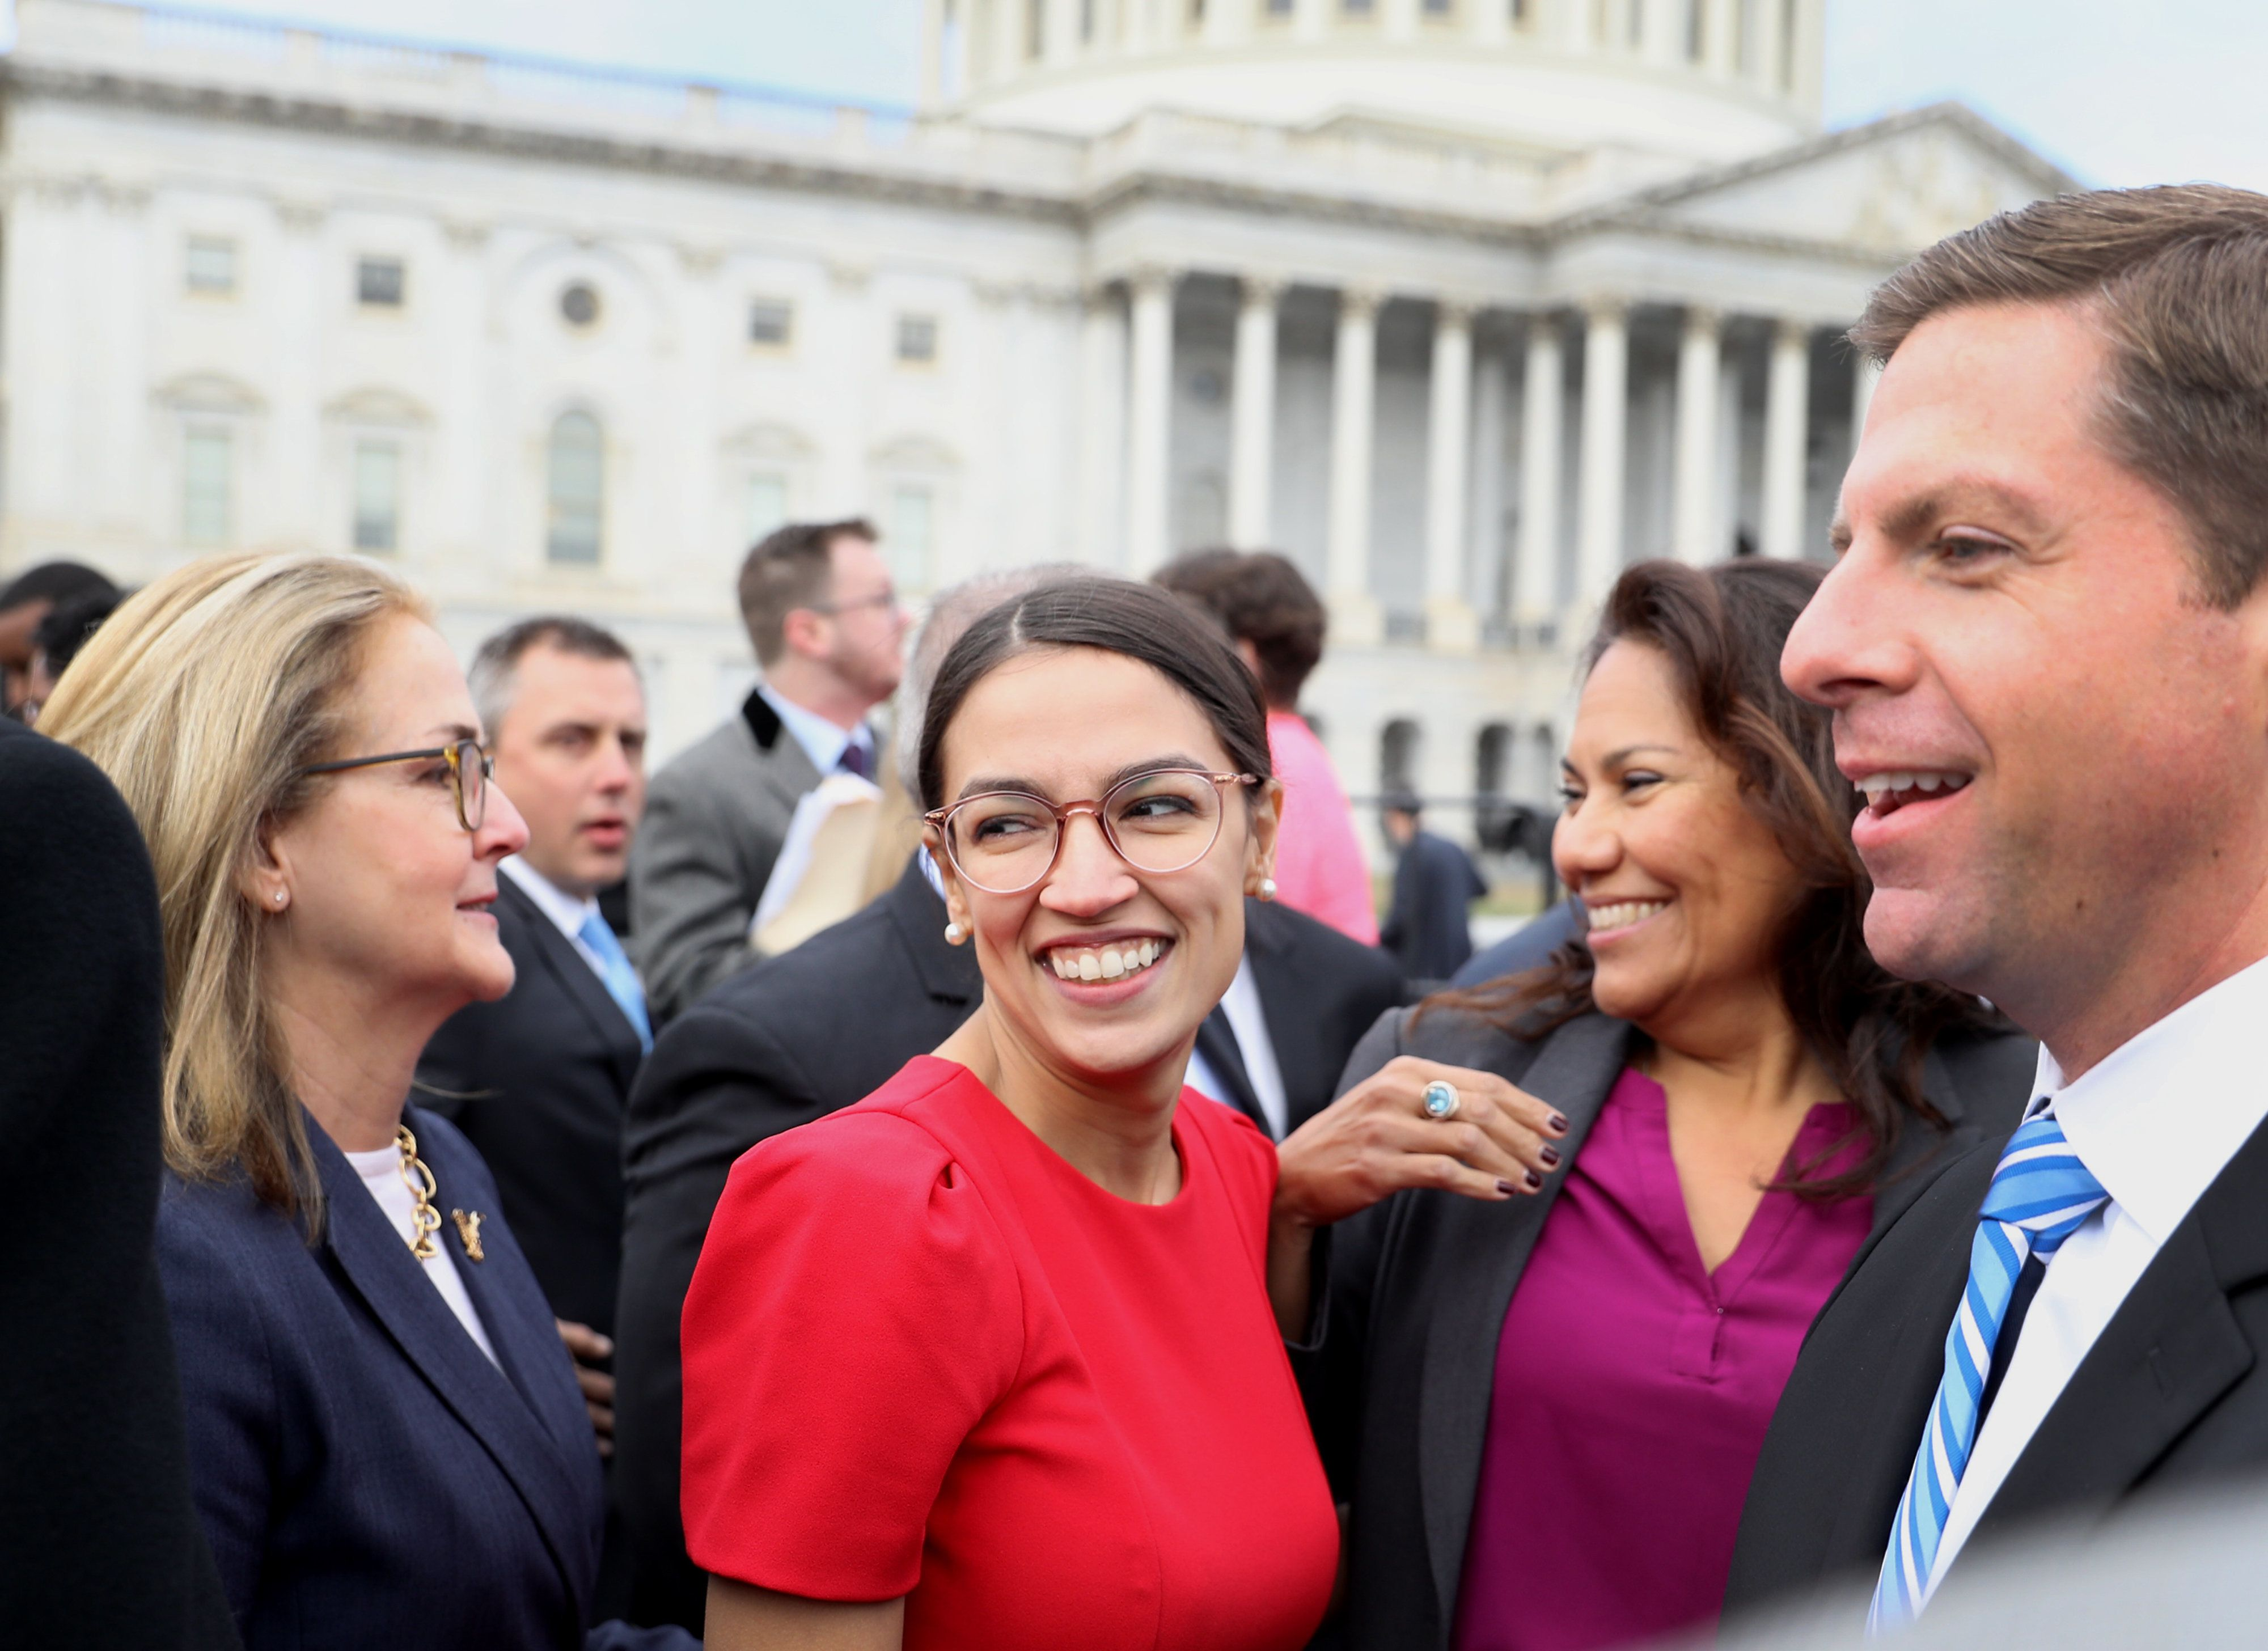 Representative-elect Alexandria Ocasio-Cortez, a Democrat from New York, smiles after a group photo with the 116th Congress outside the U.S Capitol in Washington, D.C., U.S., on Wednesday, Nov. 14, 2018. Congress returns to work this week with Democrats and Republicans promising to work together to avert a partial government shutdown and pass a handful of other bills, though President Donald Trump's demand to fund his border wall could blow up their plans. Photographer: Andrew Harrer/Bloomberg via Getty Images